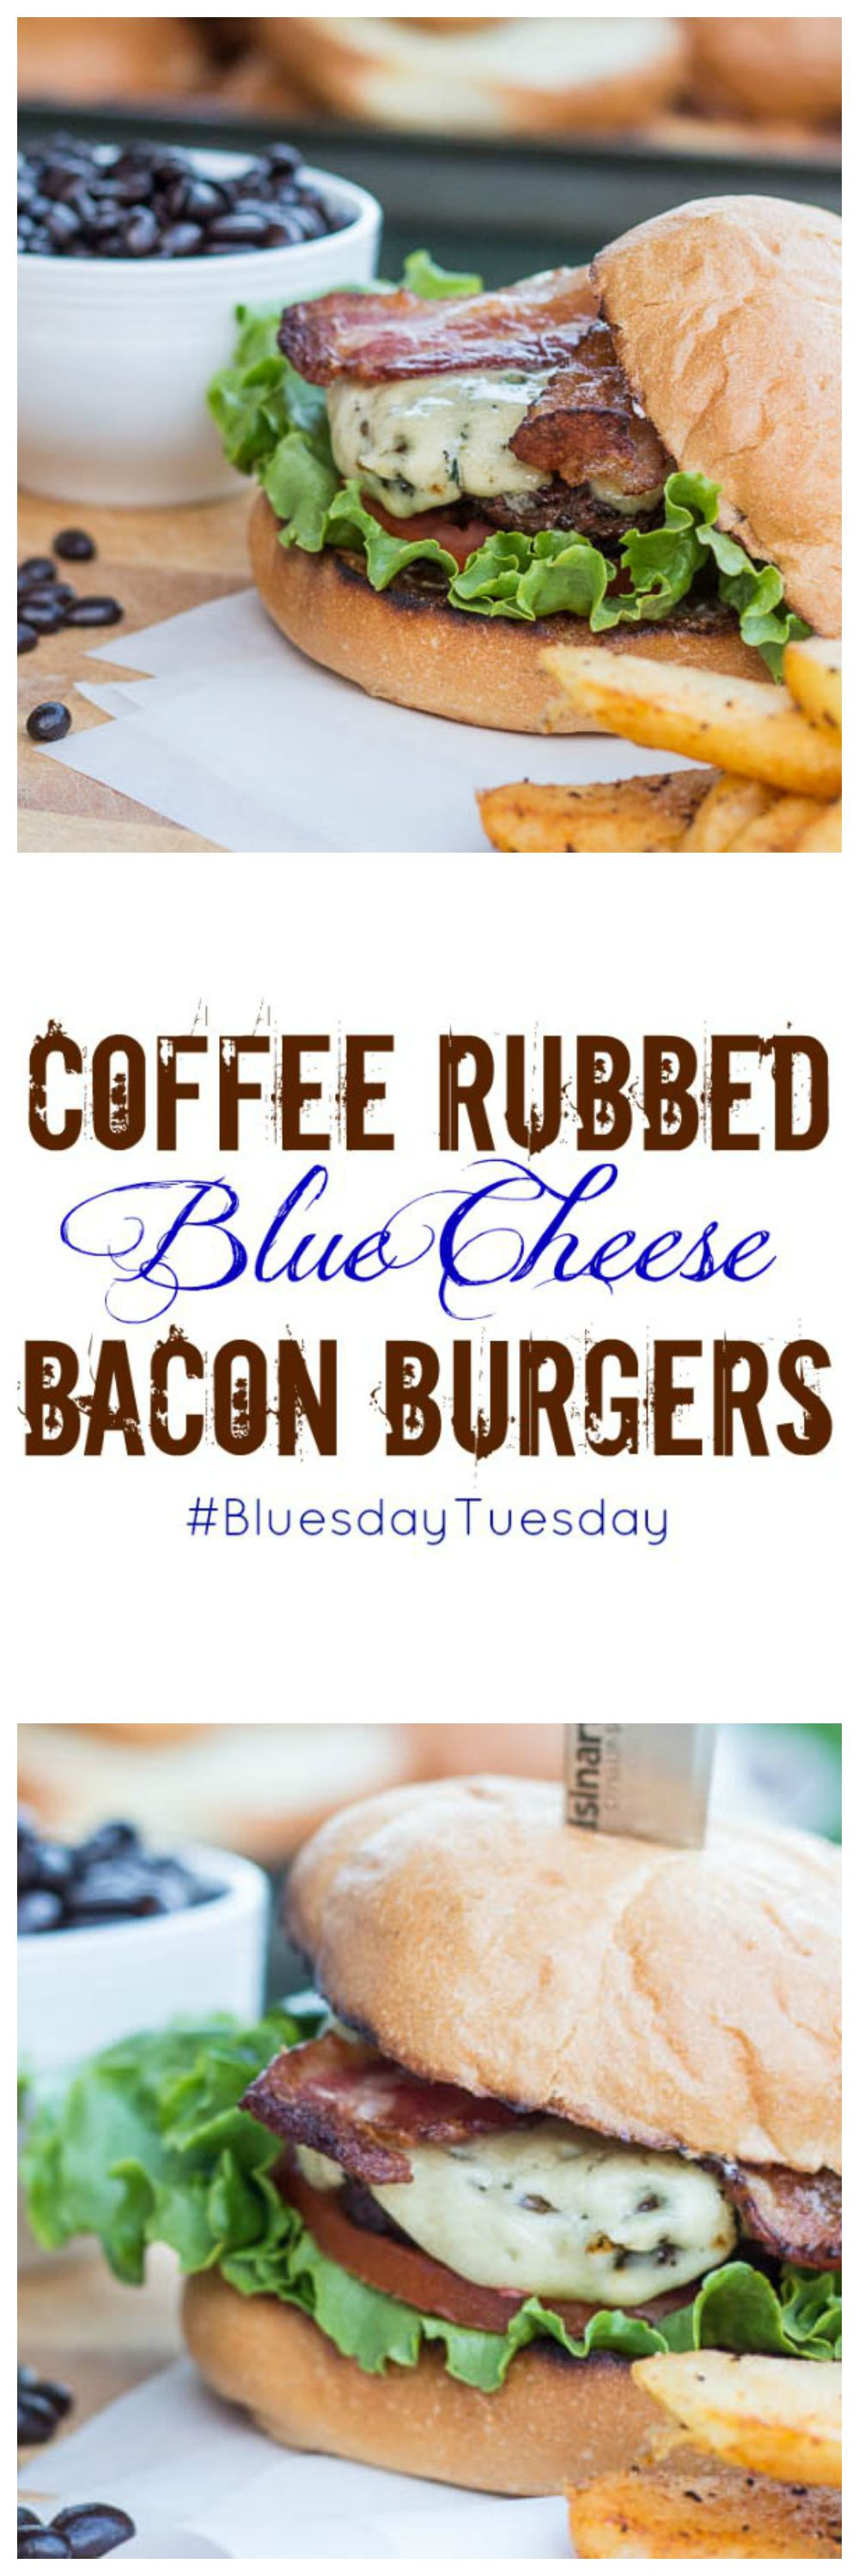 Coffee Rubbed Blue Cheese Bacon Burgers | Catz in the Kitchen | catzinthekitchen.com | Partnering with Castelo for a Summer of Blue | #BluesdayTuesday